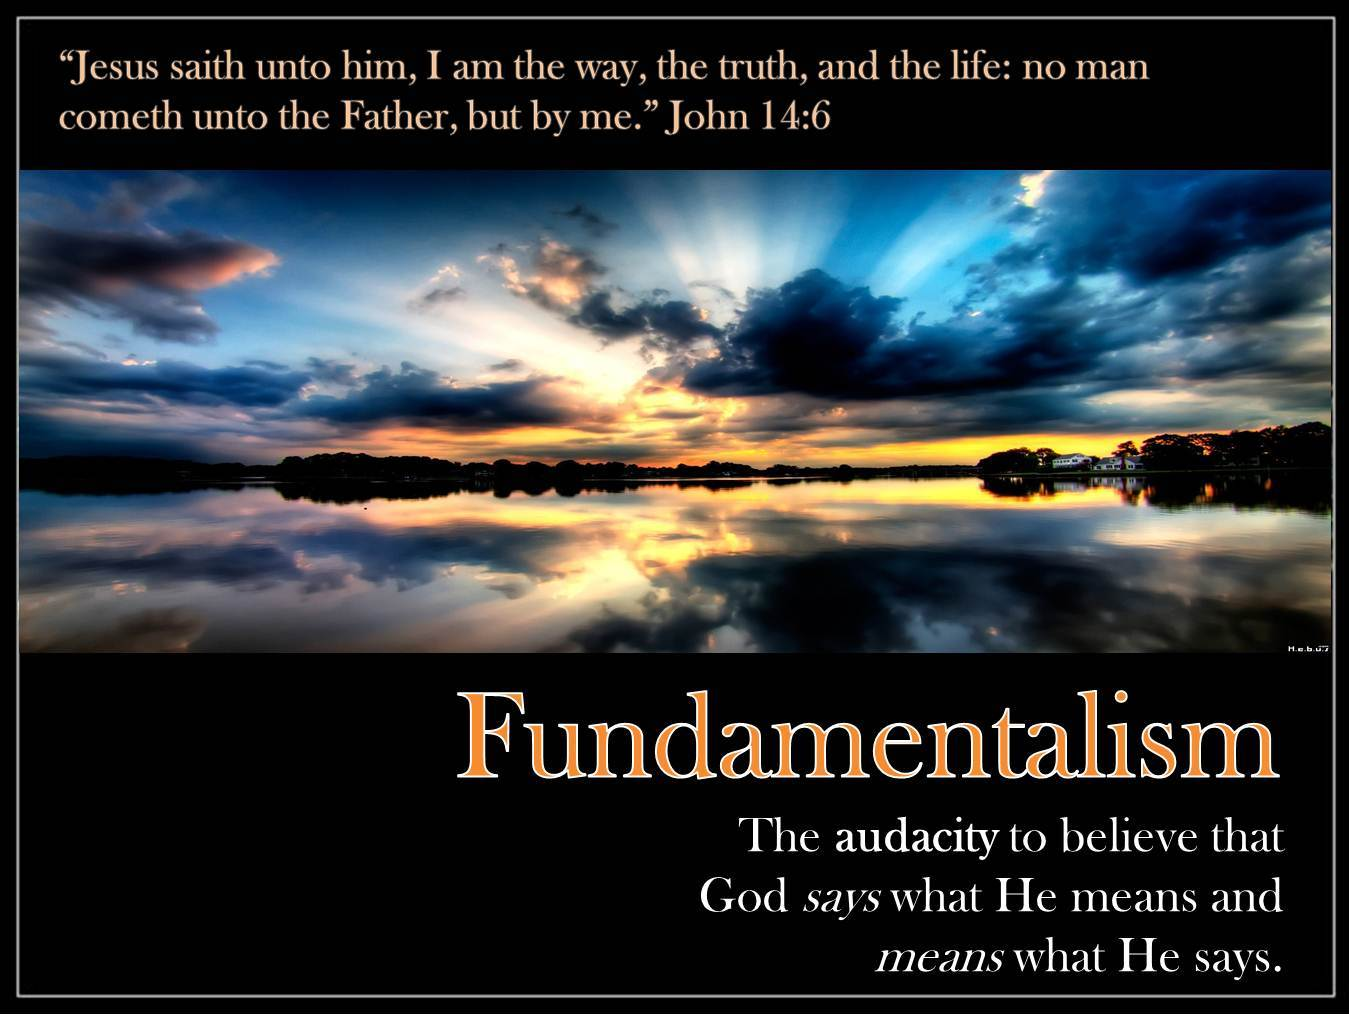 religious fundamentalism essay The fundamentals: a testimony to the truth (generally referred to simply as the fundamentals) is a set of ninety essays published between 1910 and 1915 by the testimony publishing company of.